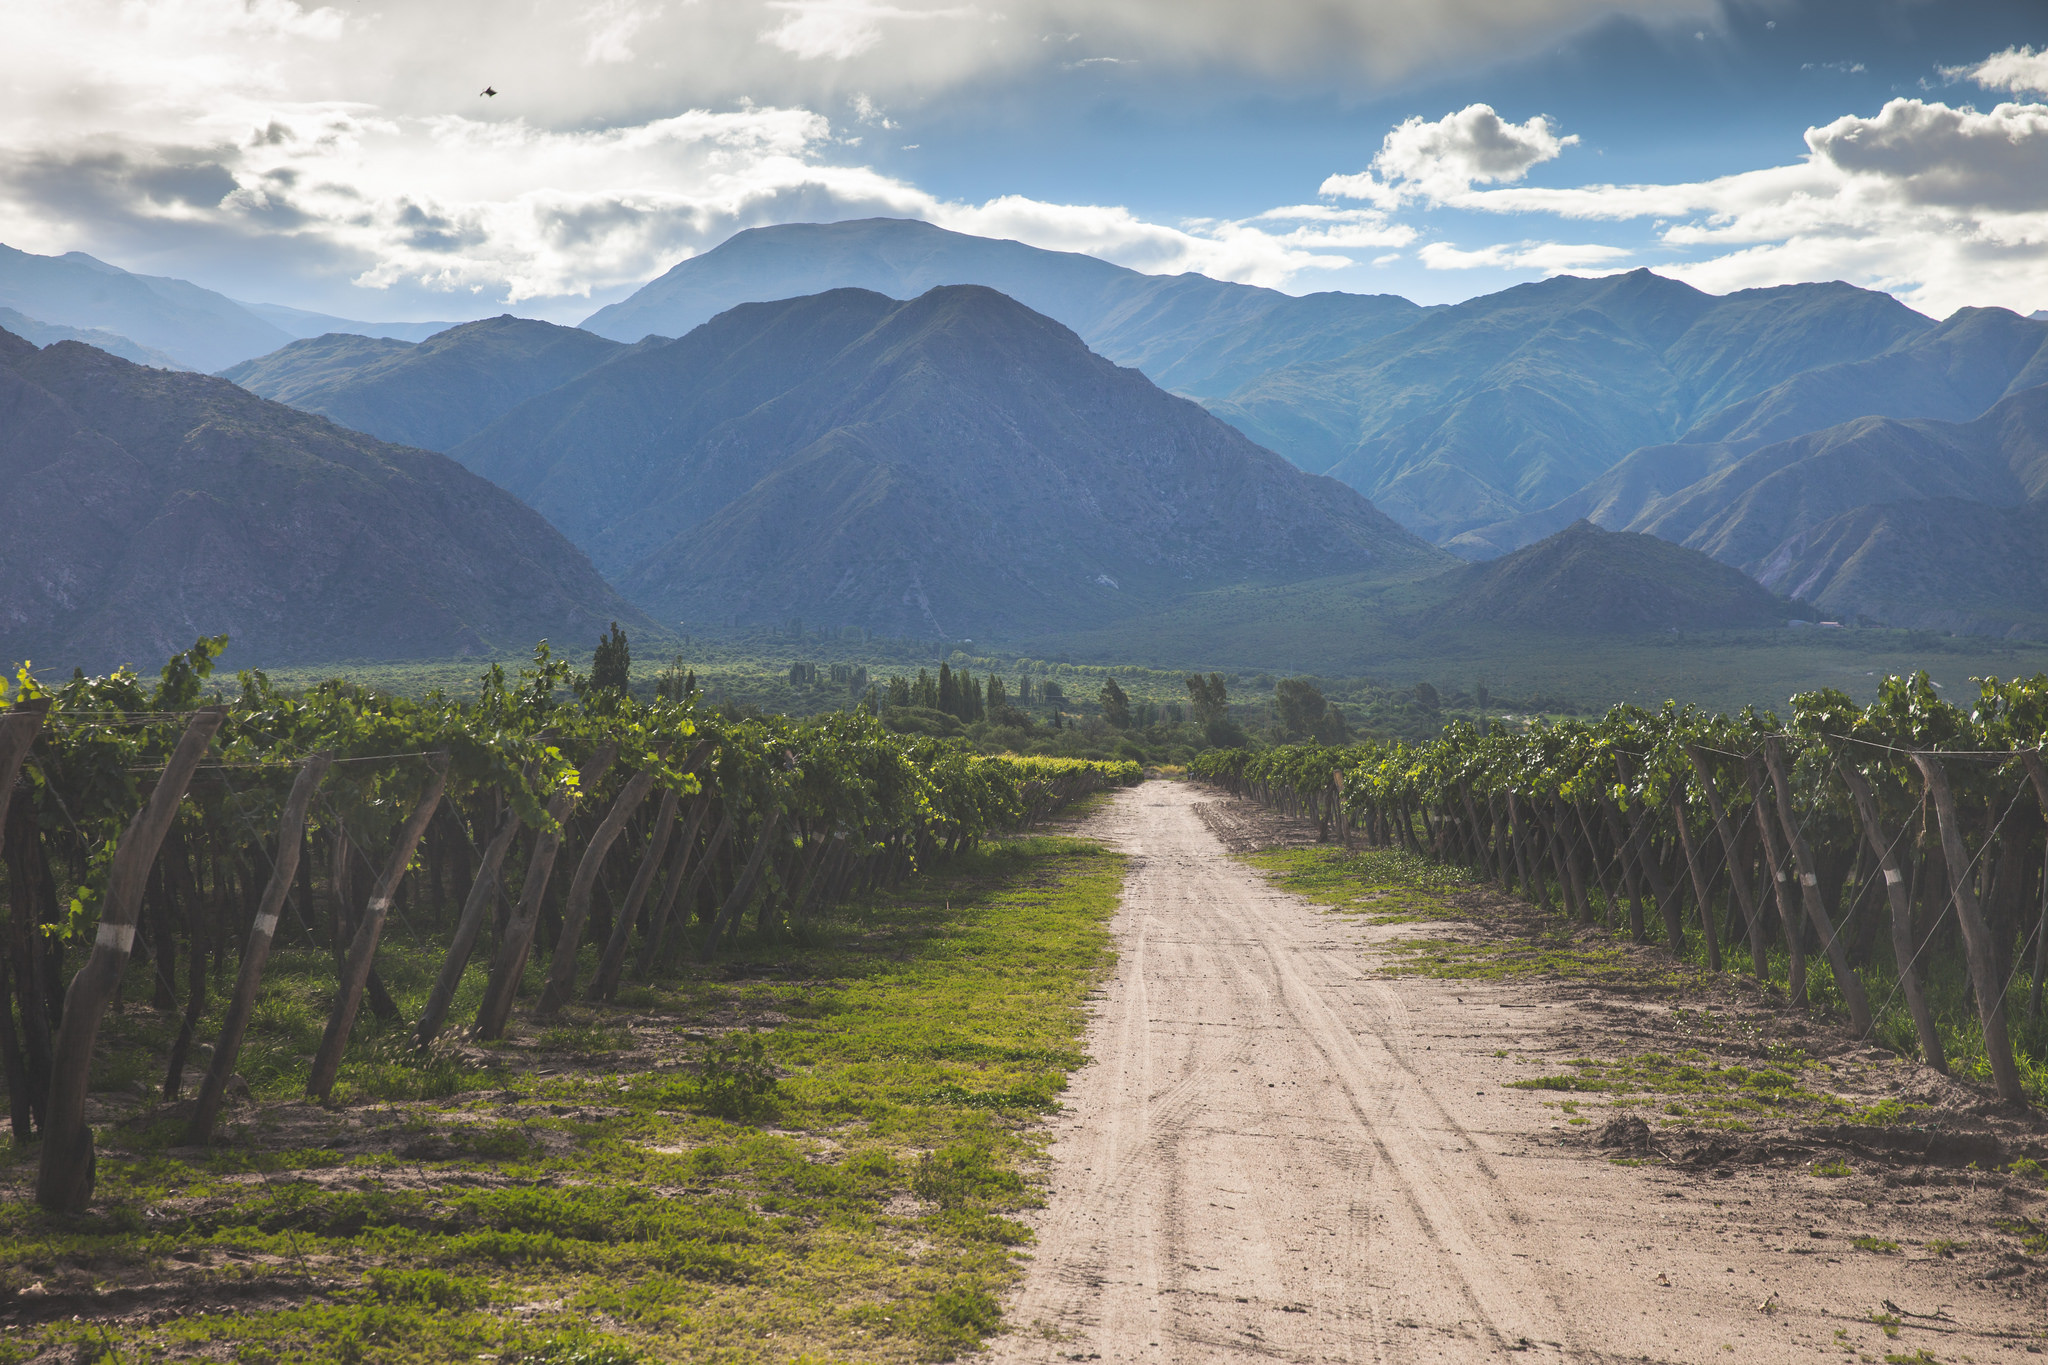 Salta-Cafayate-Torrontes-Vineyards-Argentina-Chris-Ford